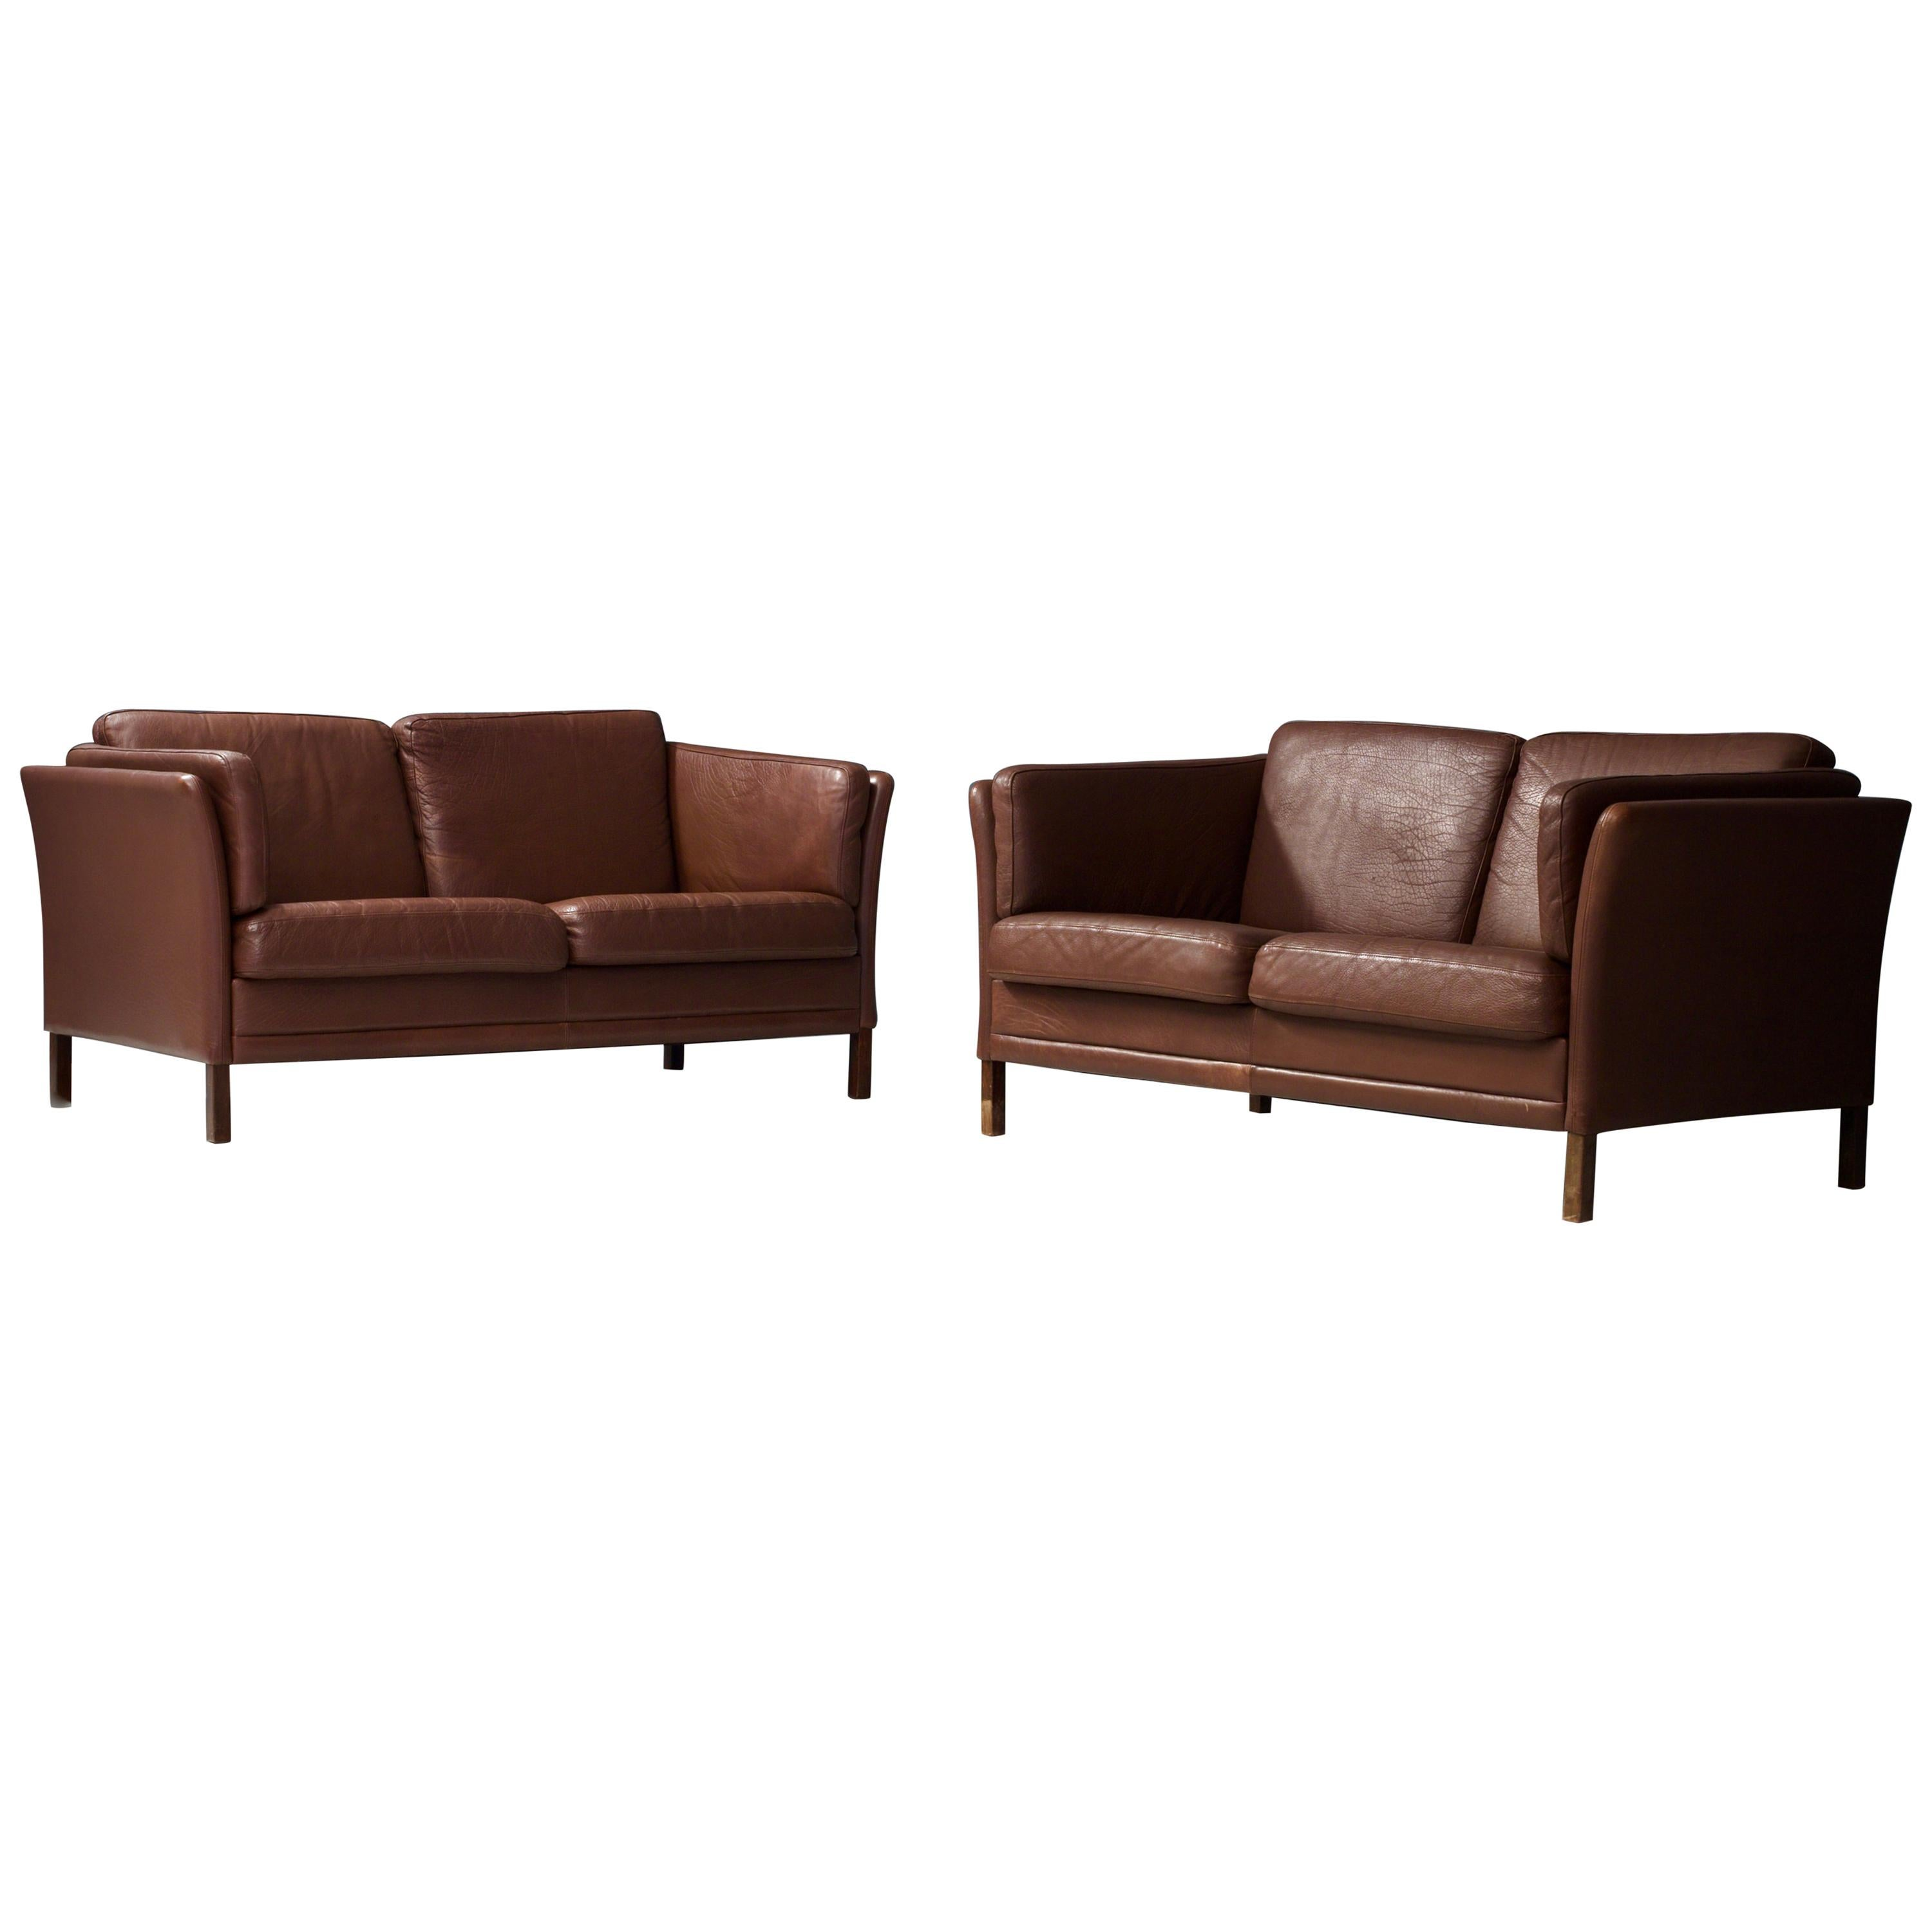 Set of Two, Two-Seat Sofa's in Leather by Mogens Hansen, Denmark, 1960s